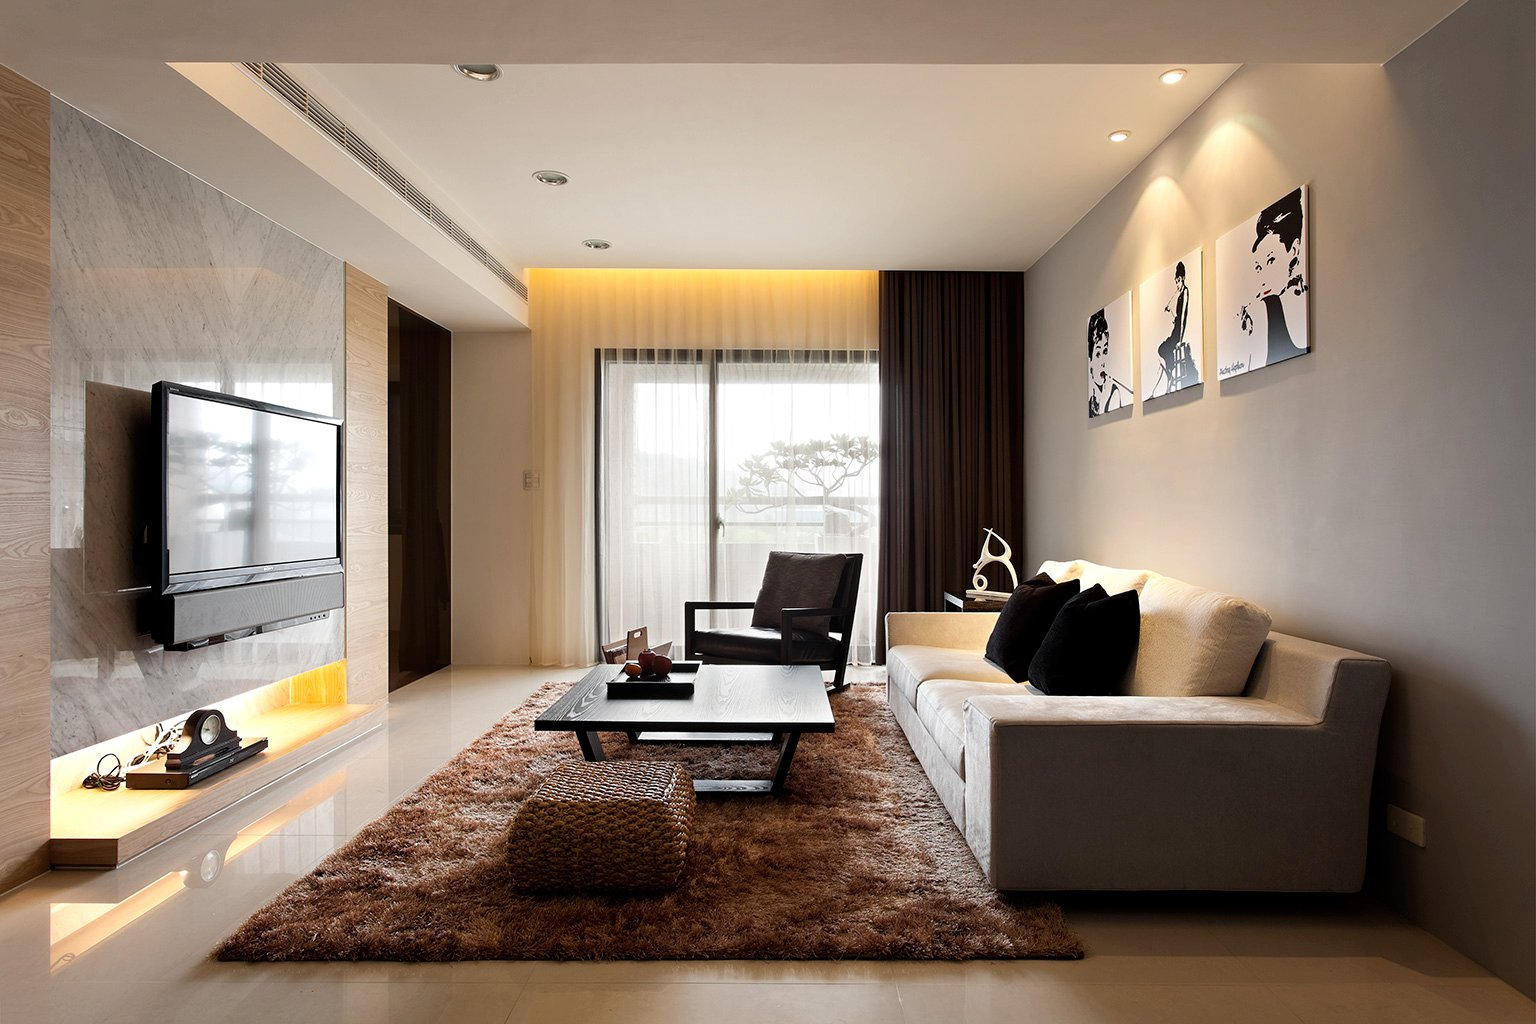 decorated living rooms images redo room 25 best modern designs 3kshares